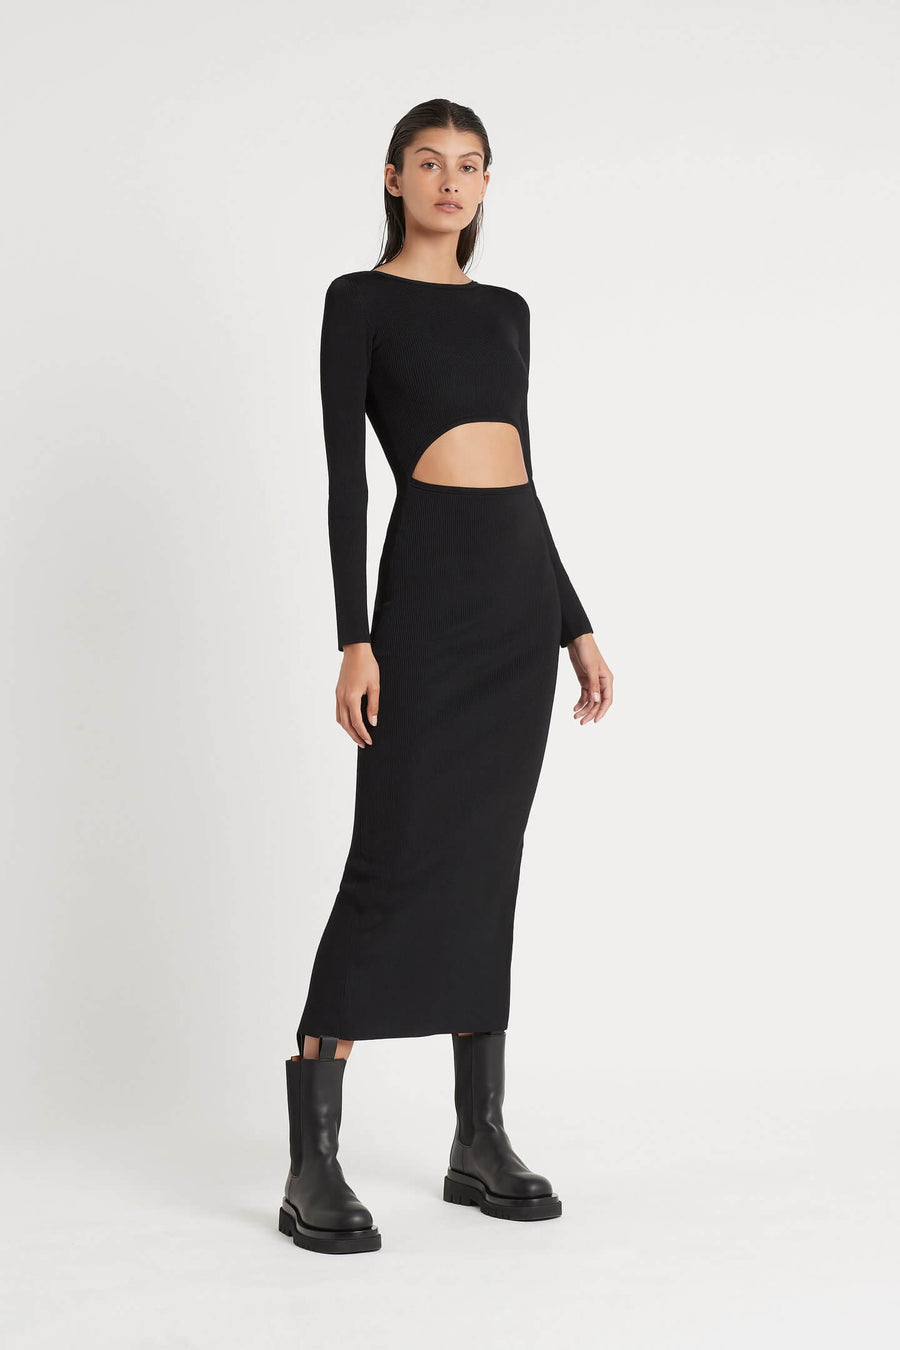 SIR Celle Reversible Long Sleeve Knit Midi Dress | The New Trend